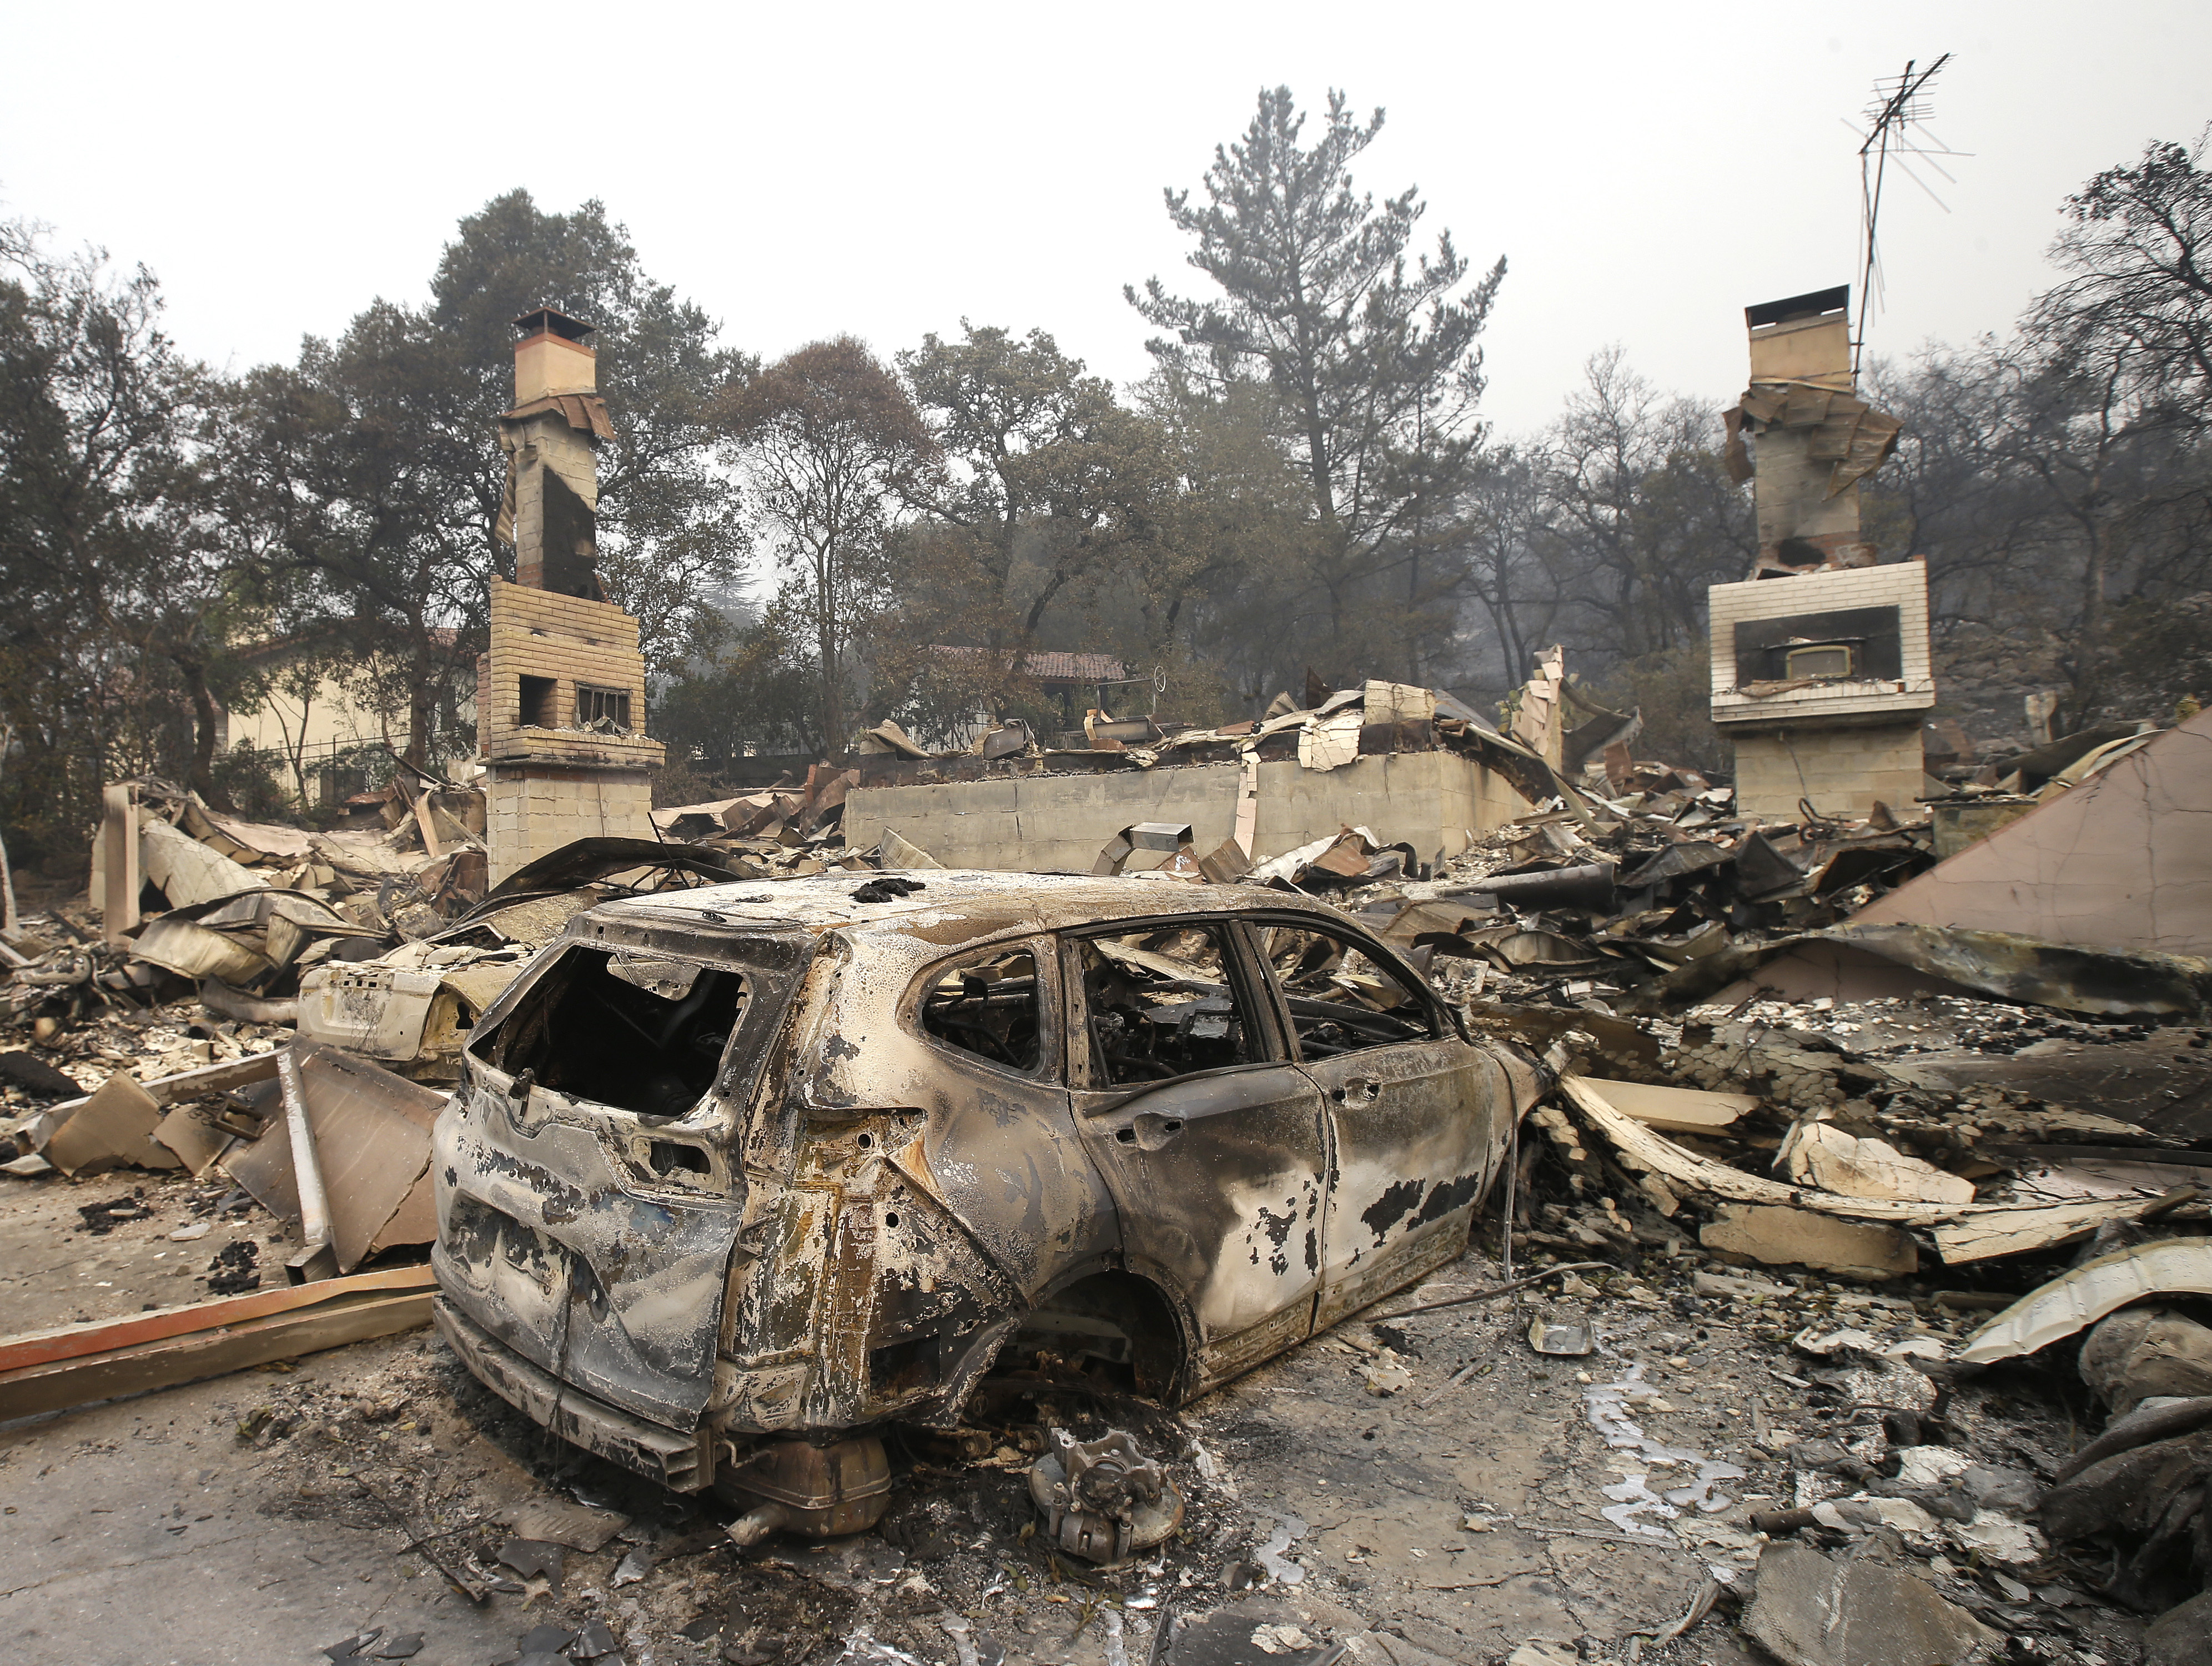 The burned remains of a car sit in the driveway of a home near the Silverado Country Club and Resort, Oct. 10, 2017, Napa, Calif.